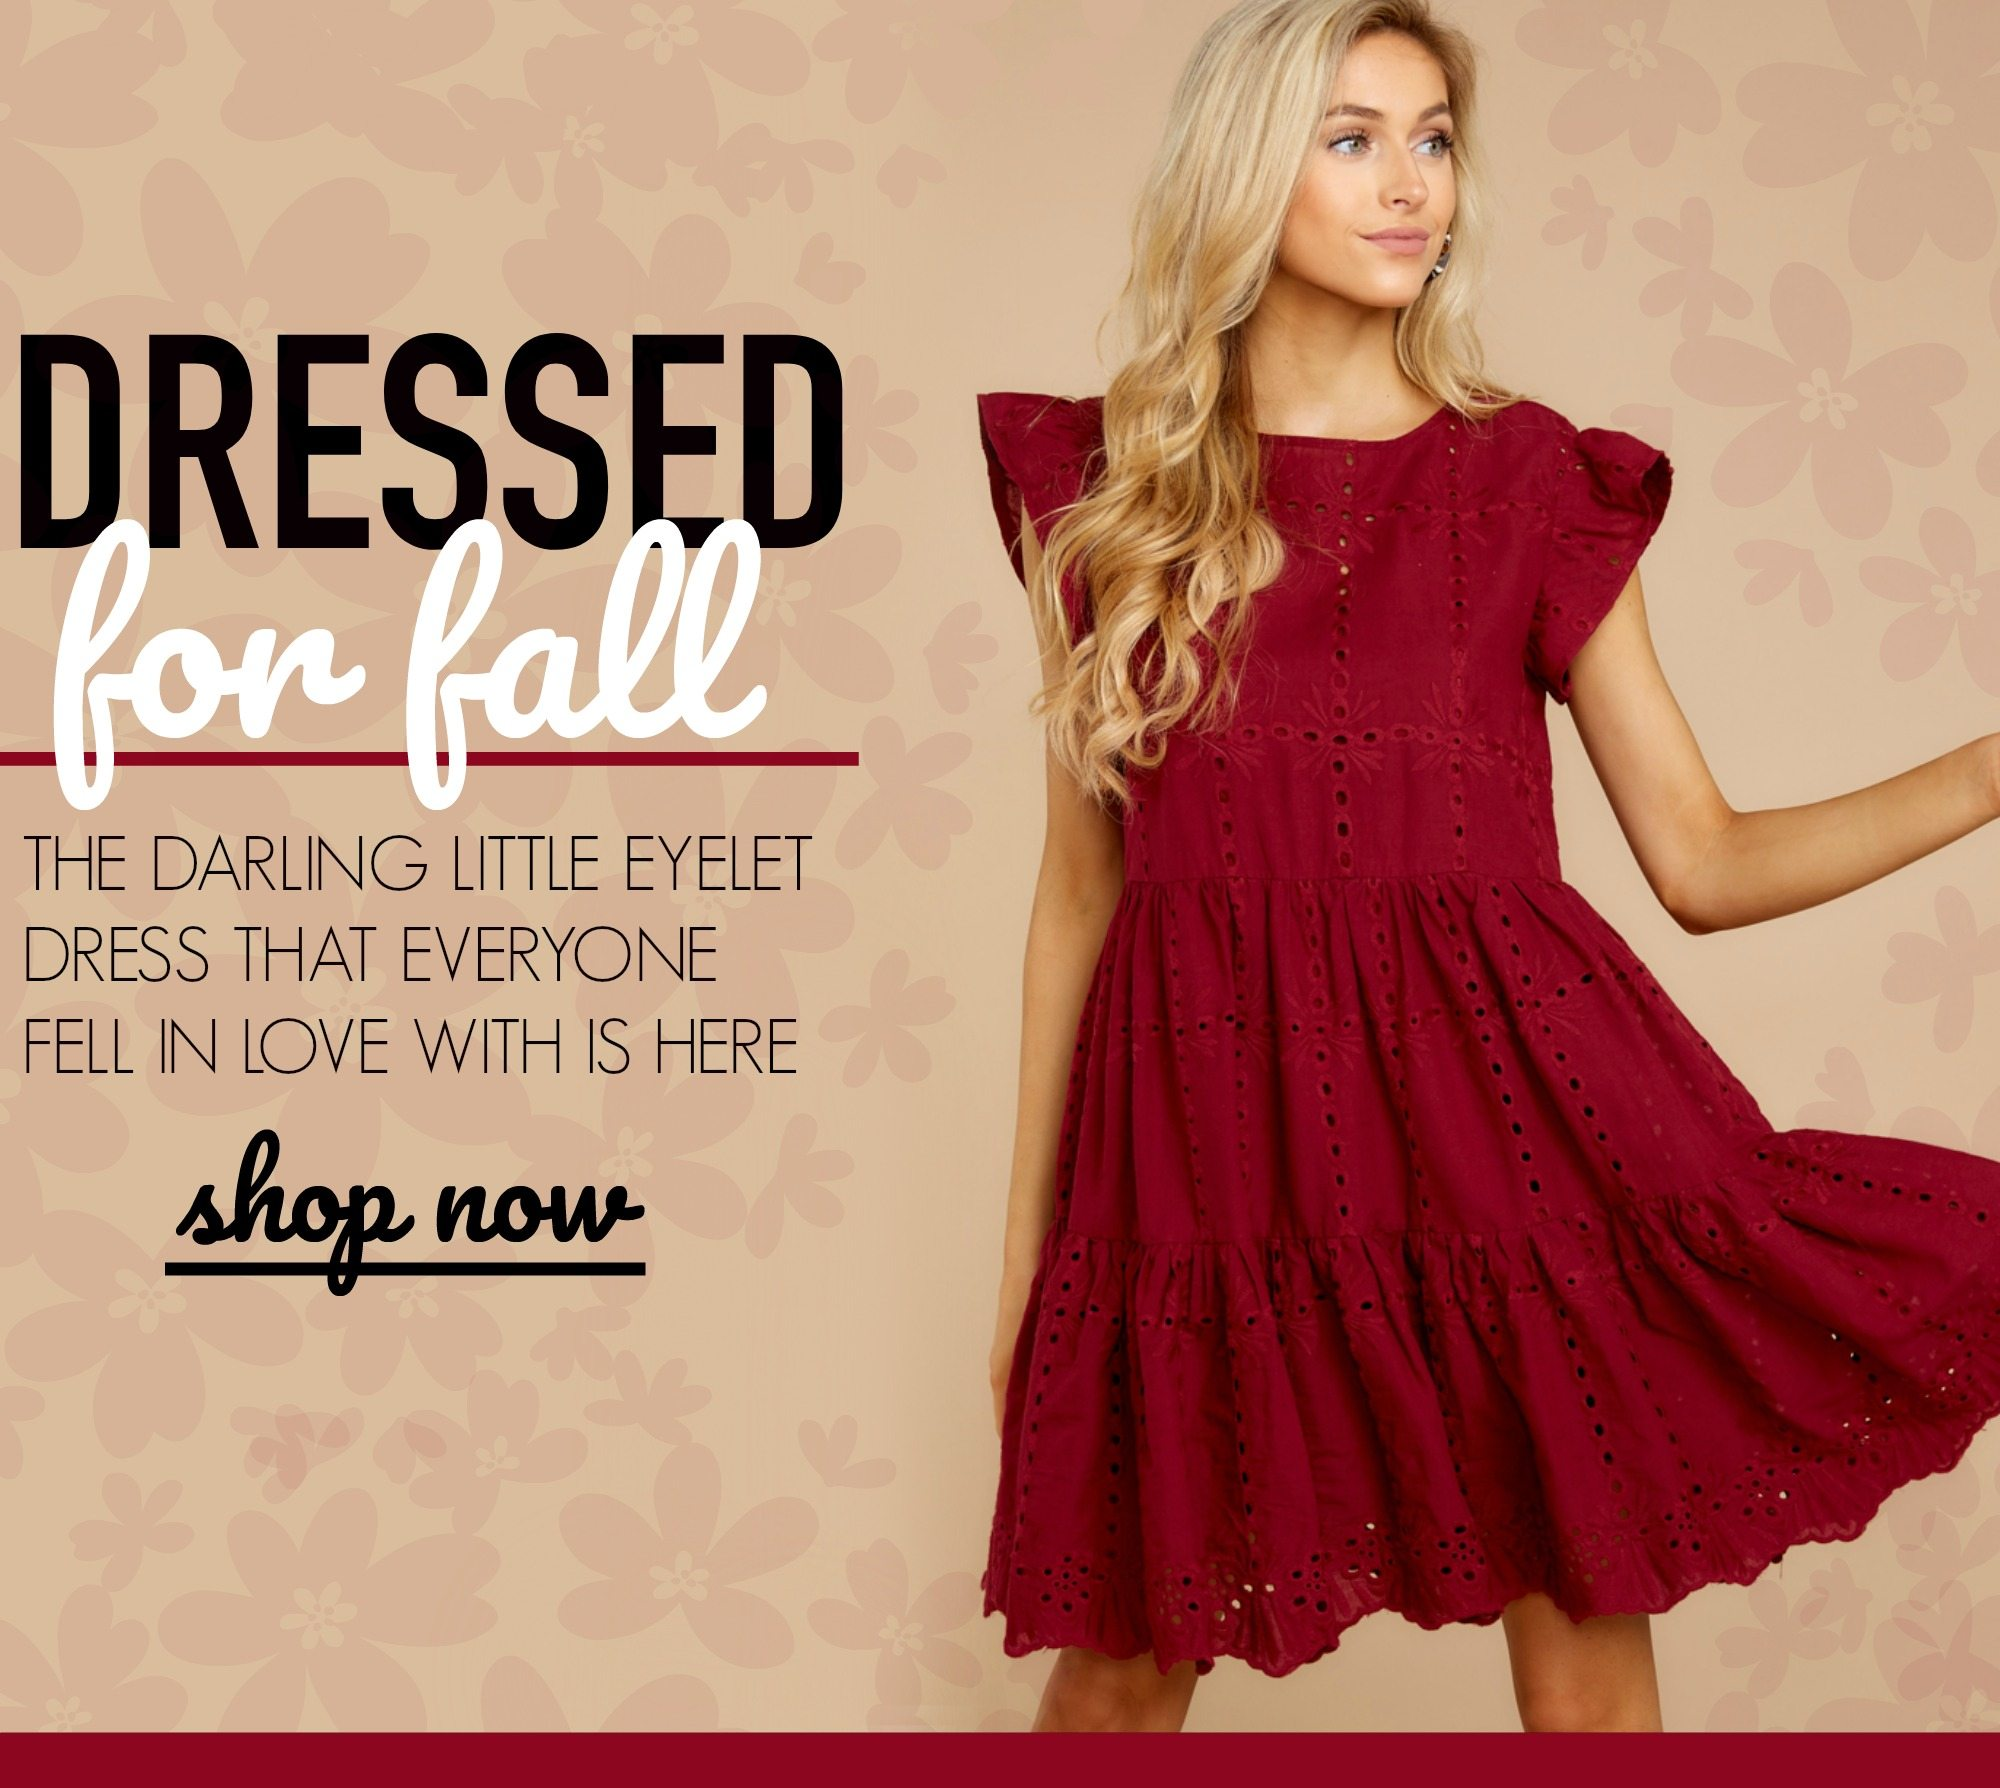 96361324 Wish granted: the little burgundy dress is here! - Red Dress ...